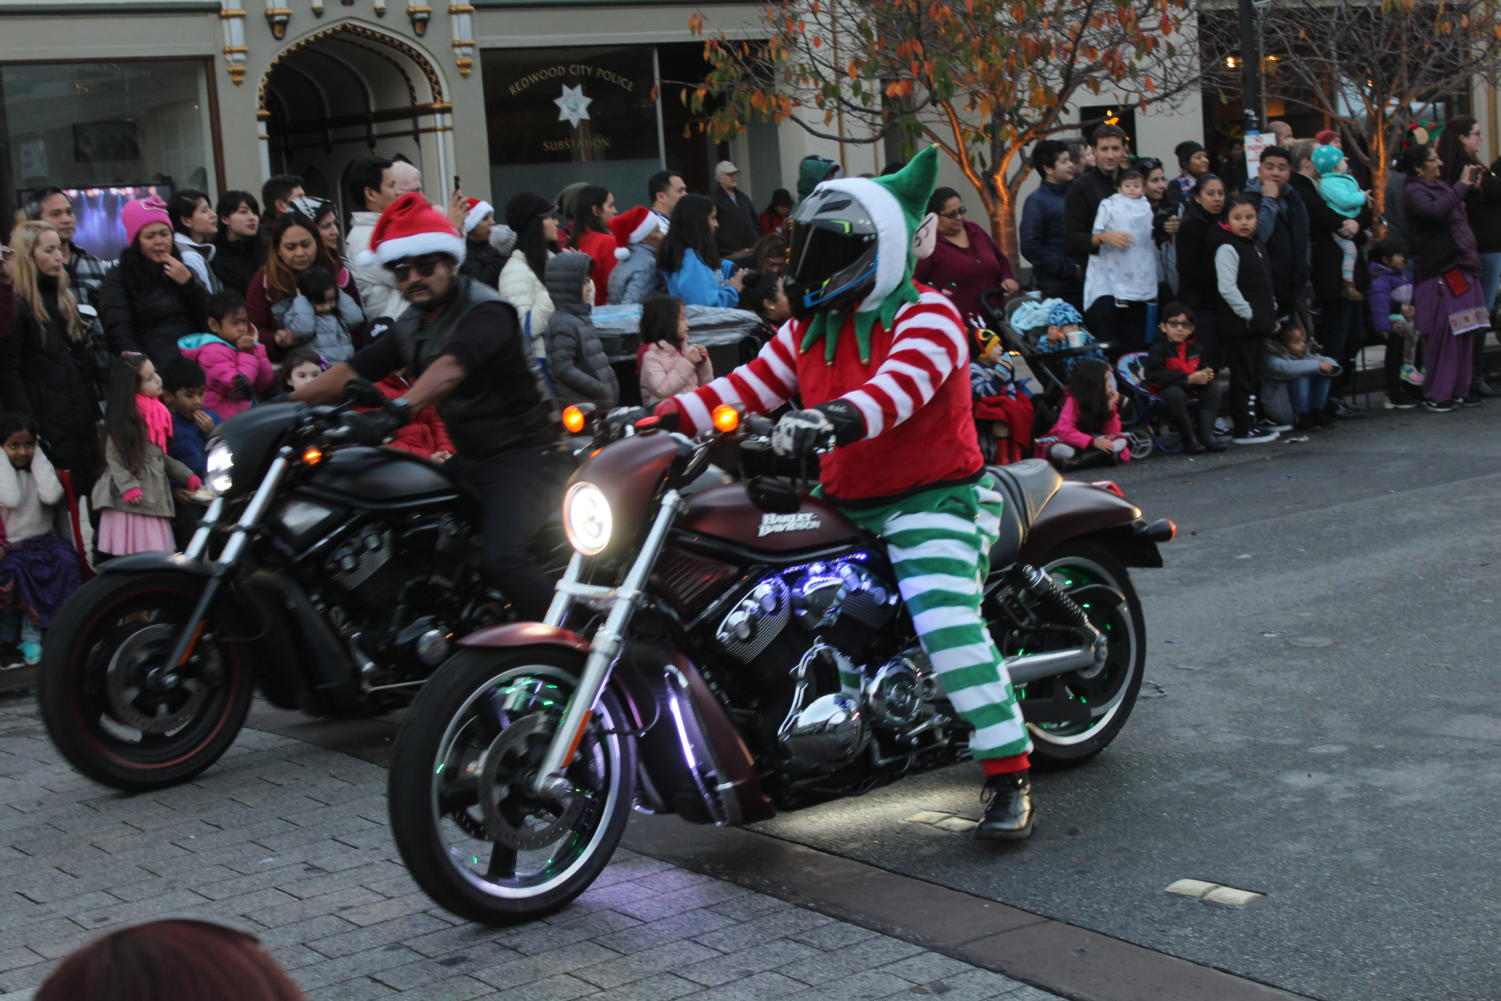 Police+officers+with+holiday+clothing+drove+through+on+motorcycles+at+the+beginning+of+the+parade.